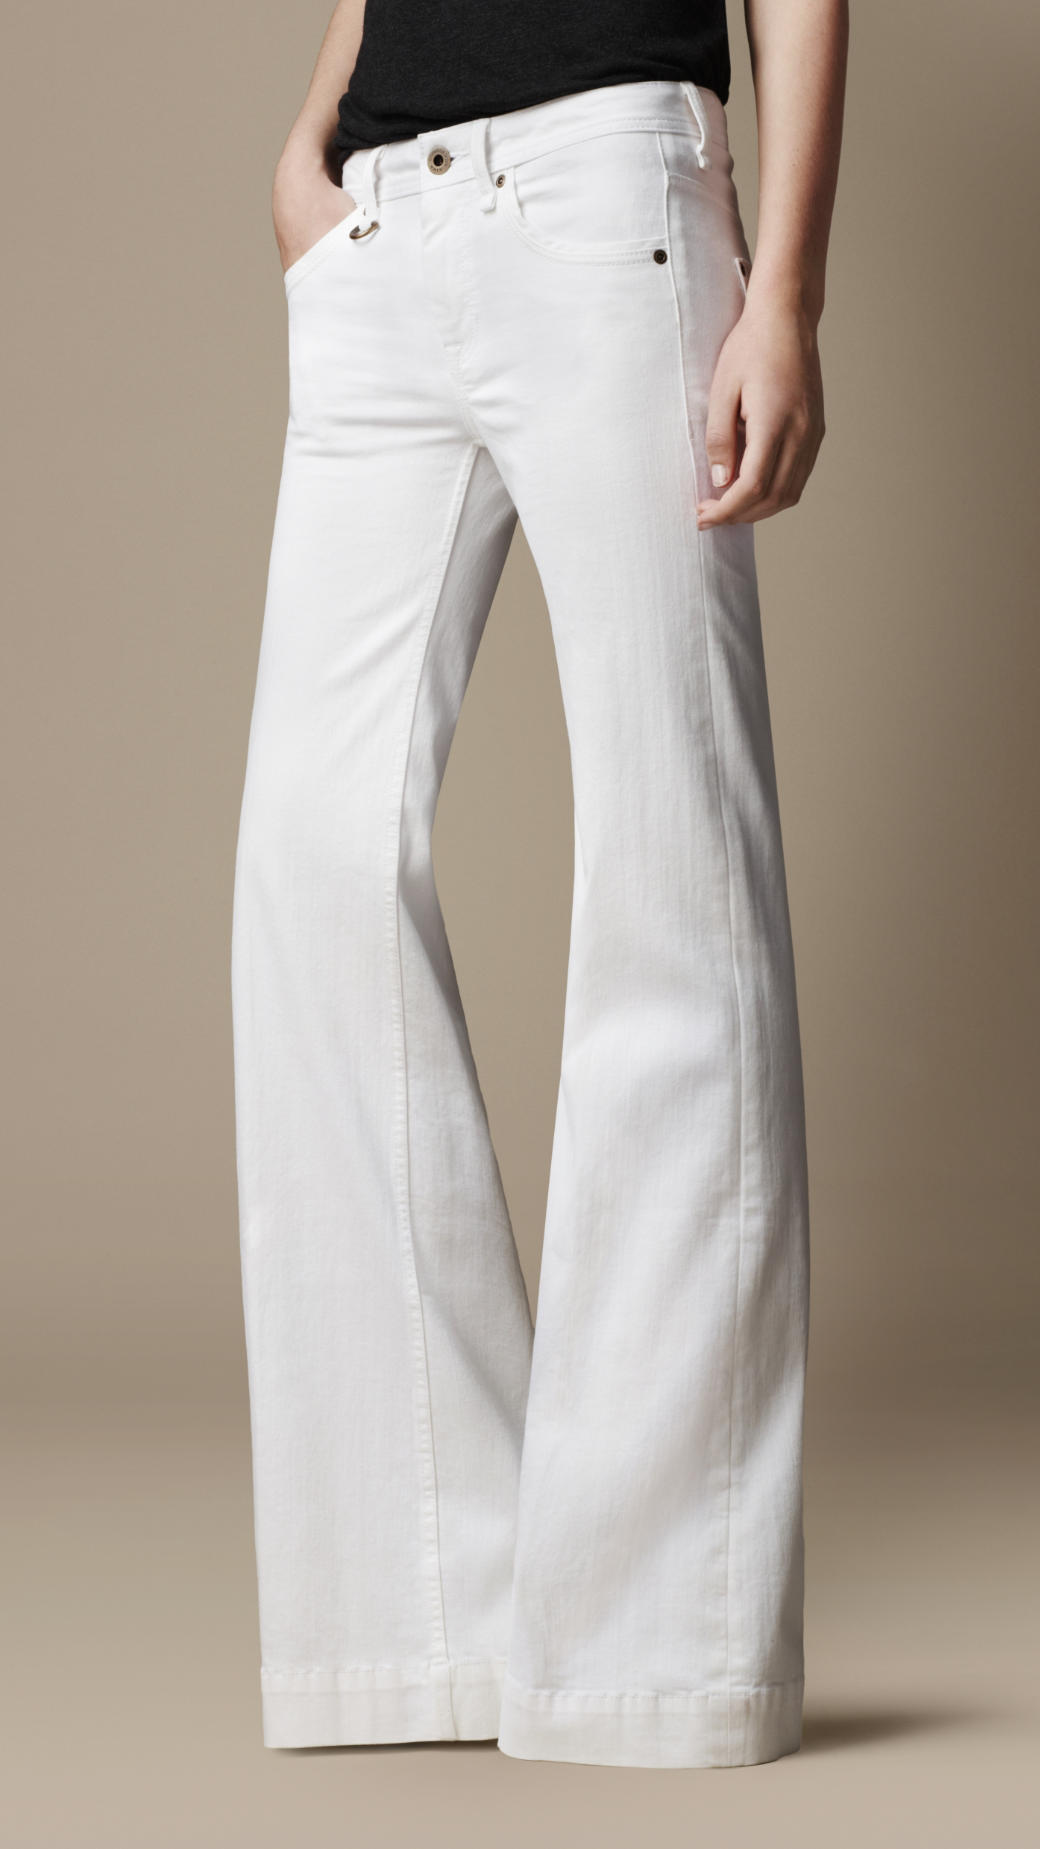 Burberry Flare Fit Jeans in White | Lyst